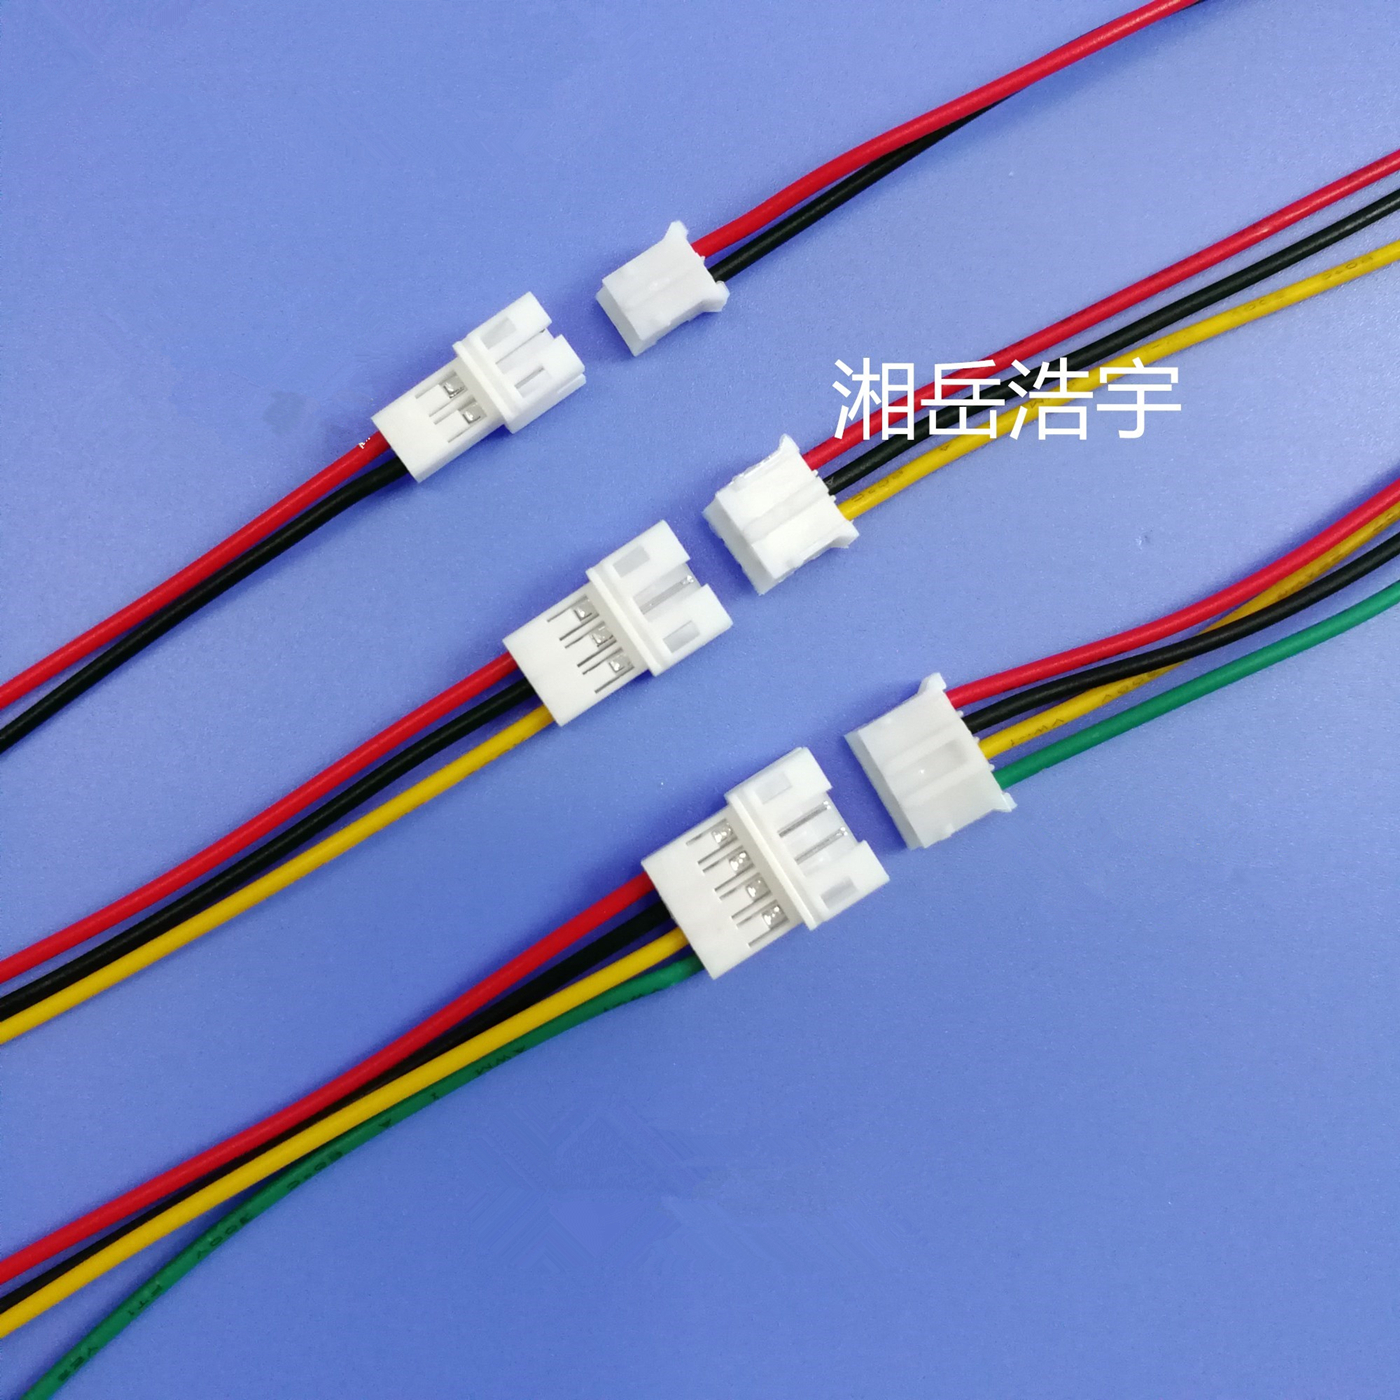 5Sets Mini Micro 2.0 PH Connector Male Female 2/3/4/5/6-Pin Plug With Wires Cables Socket 100MM 26AWG